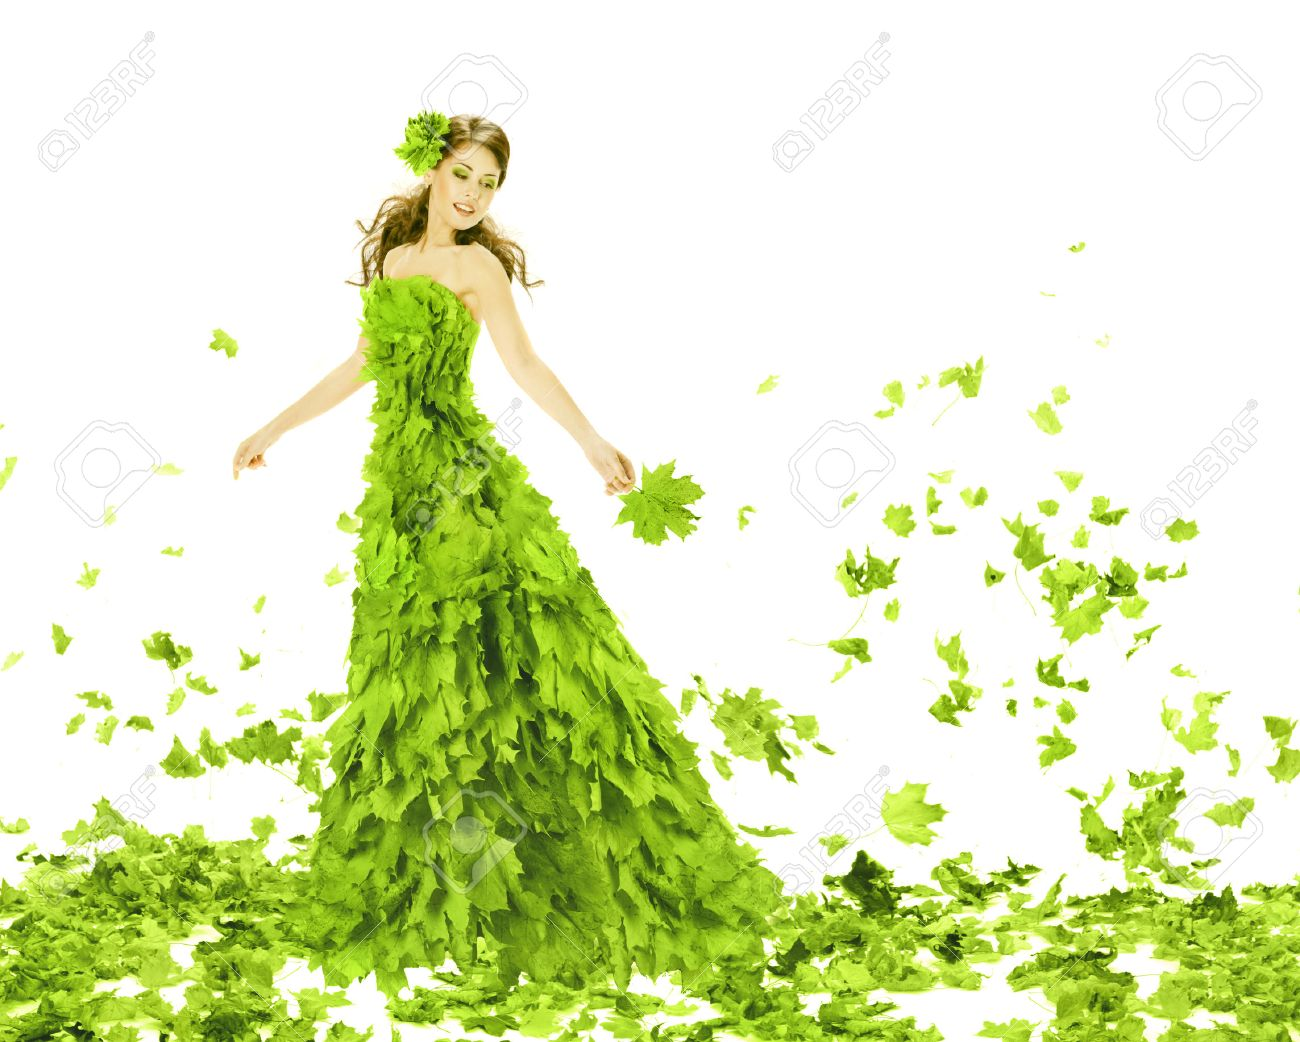 bf5d7c1f76ab Fantasy beauty, fashion woman in seasons spring leaves dress. Creative  beautiful girl in green